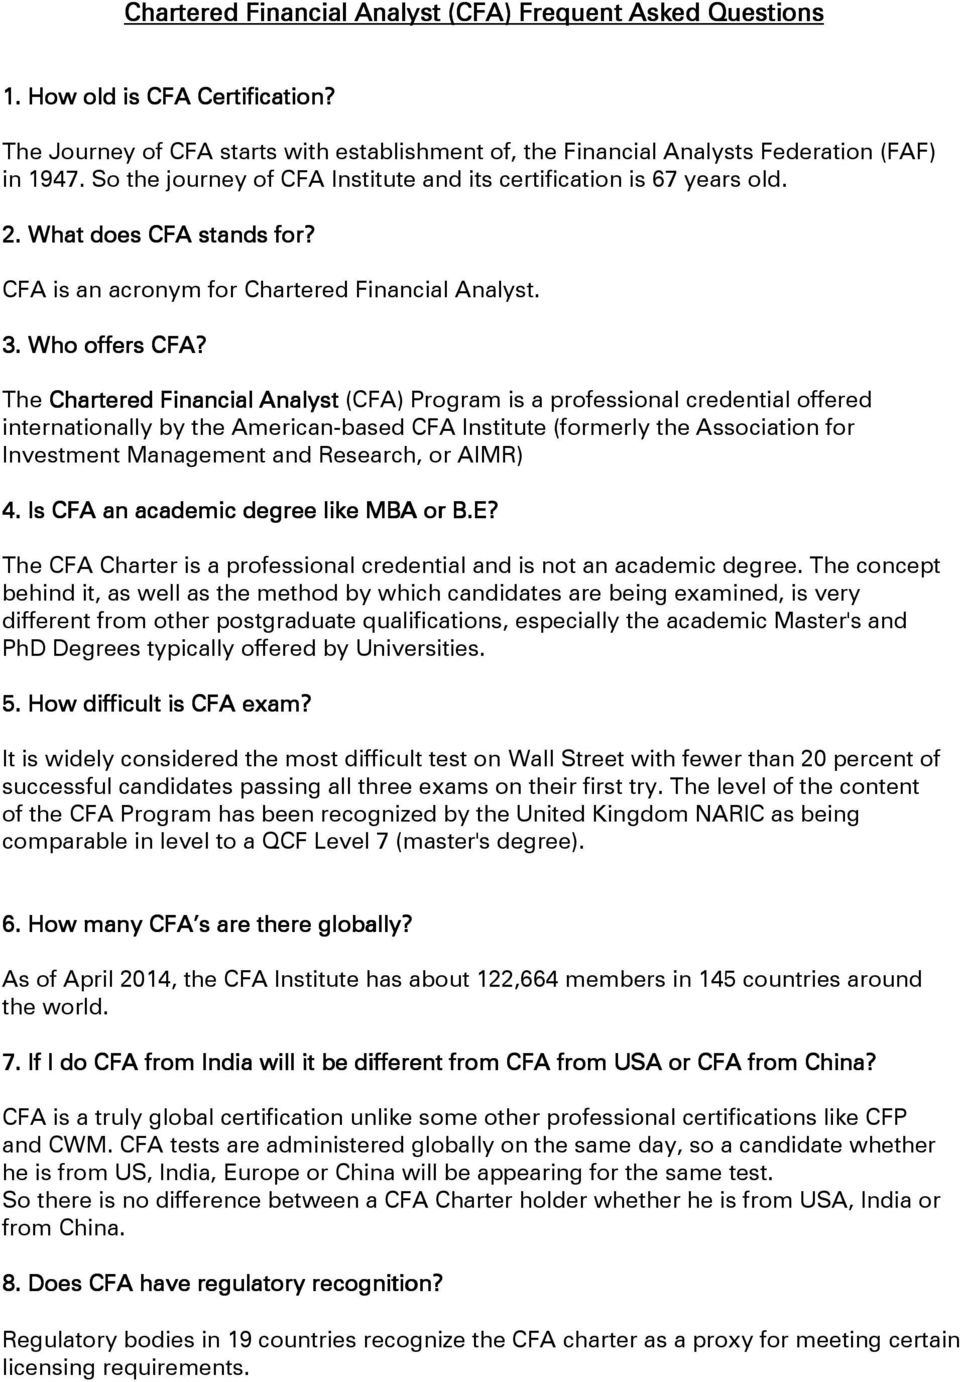 Chartered Financial Analyst Cfa Frequent Asked Questions Pdf